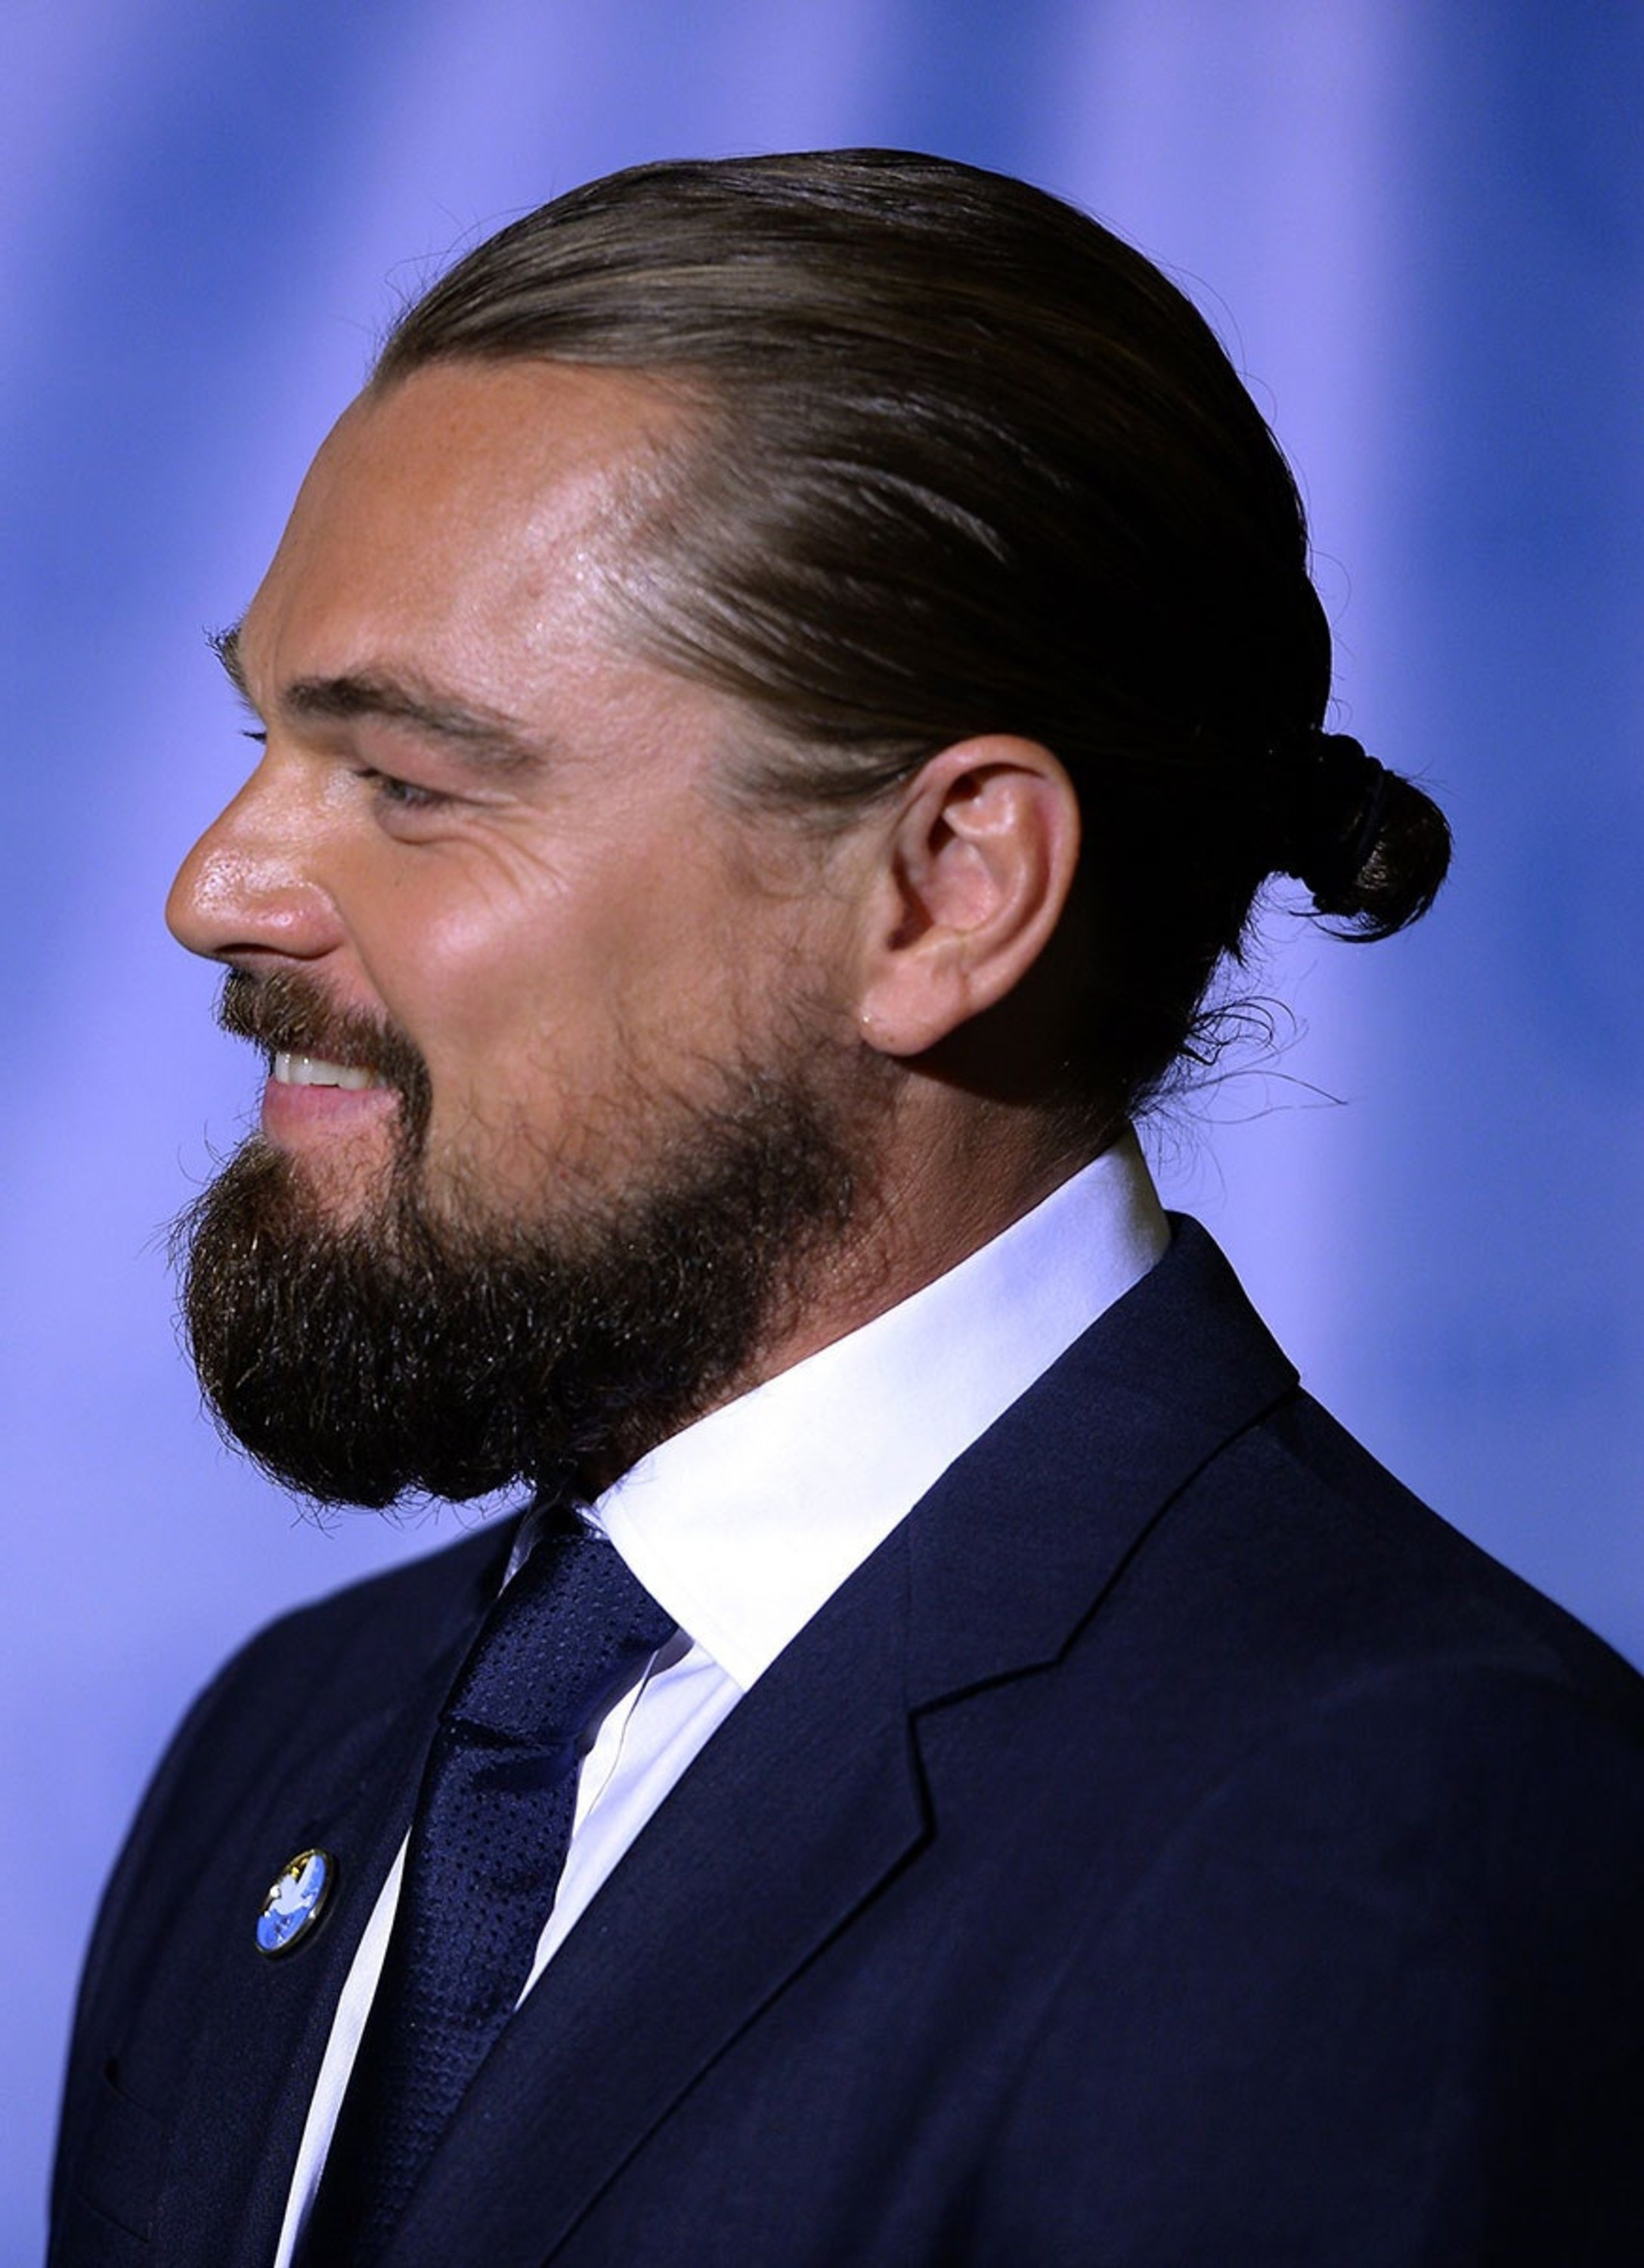 Leonardo Dicaprio with a sexy bun haircut.